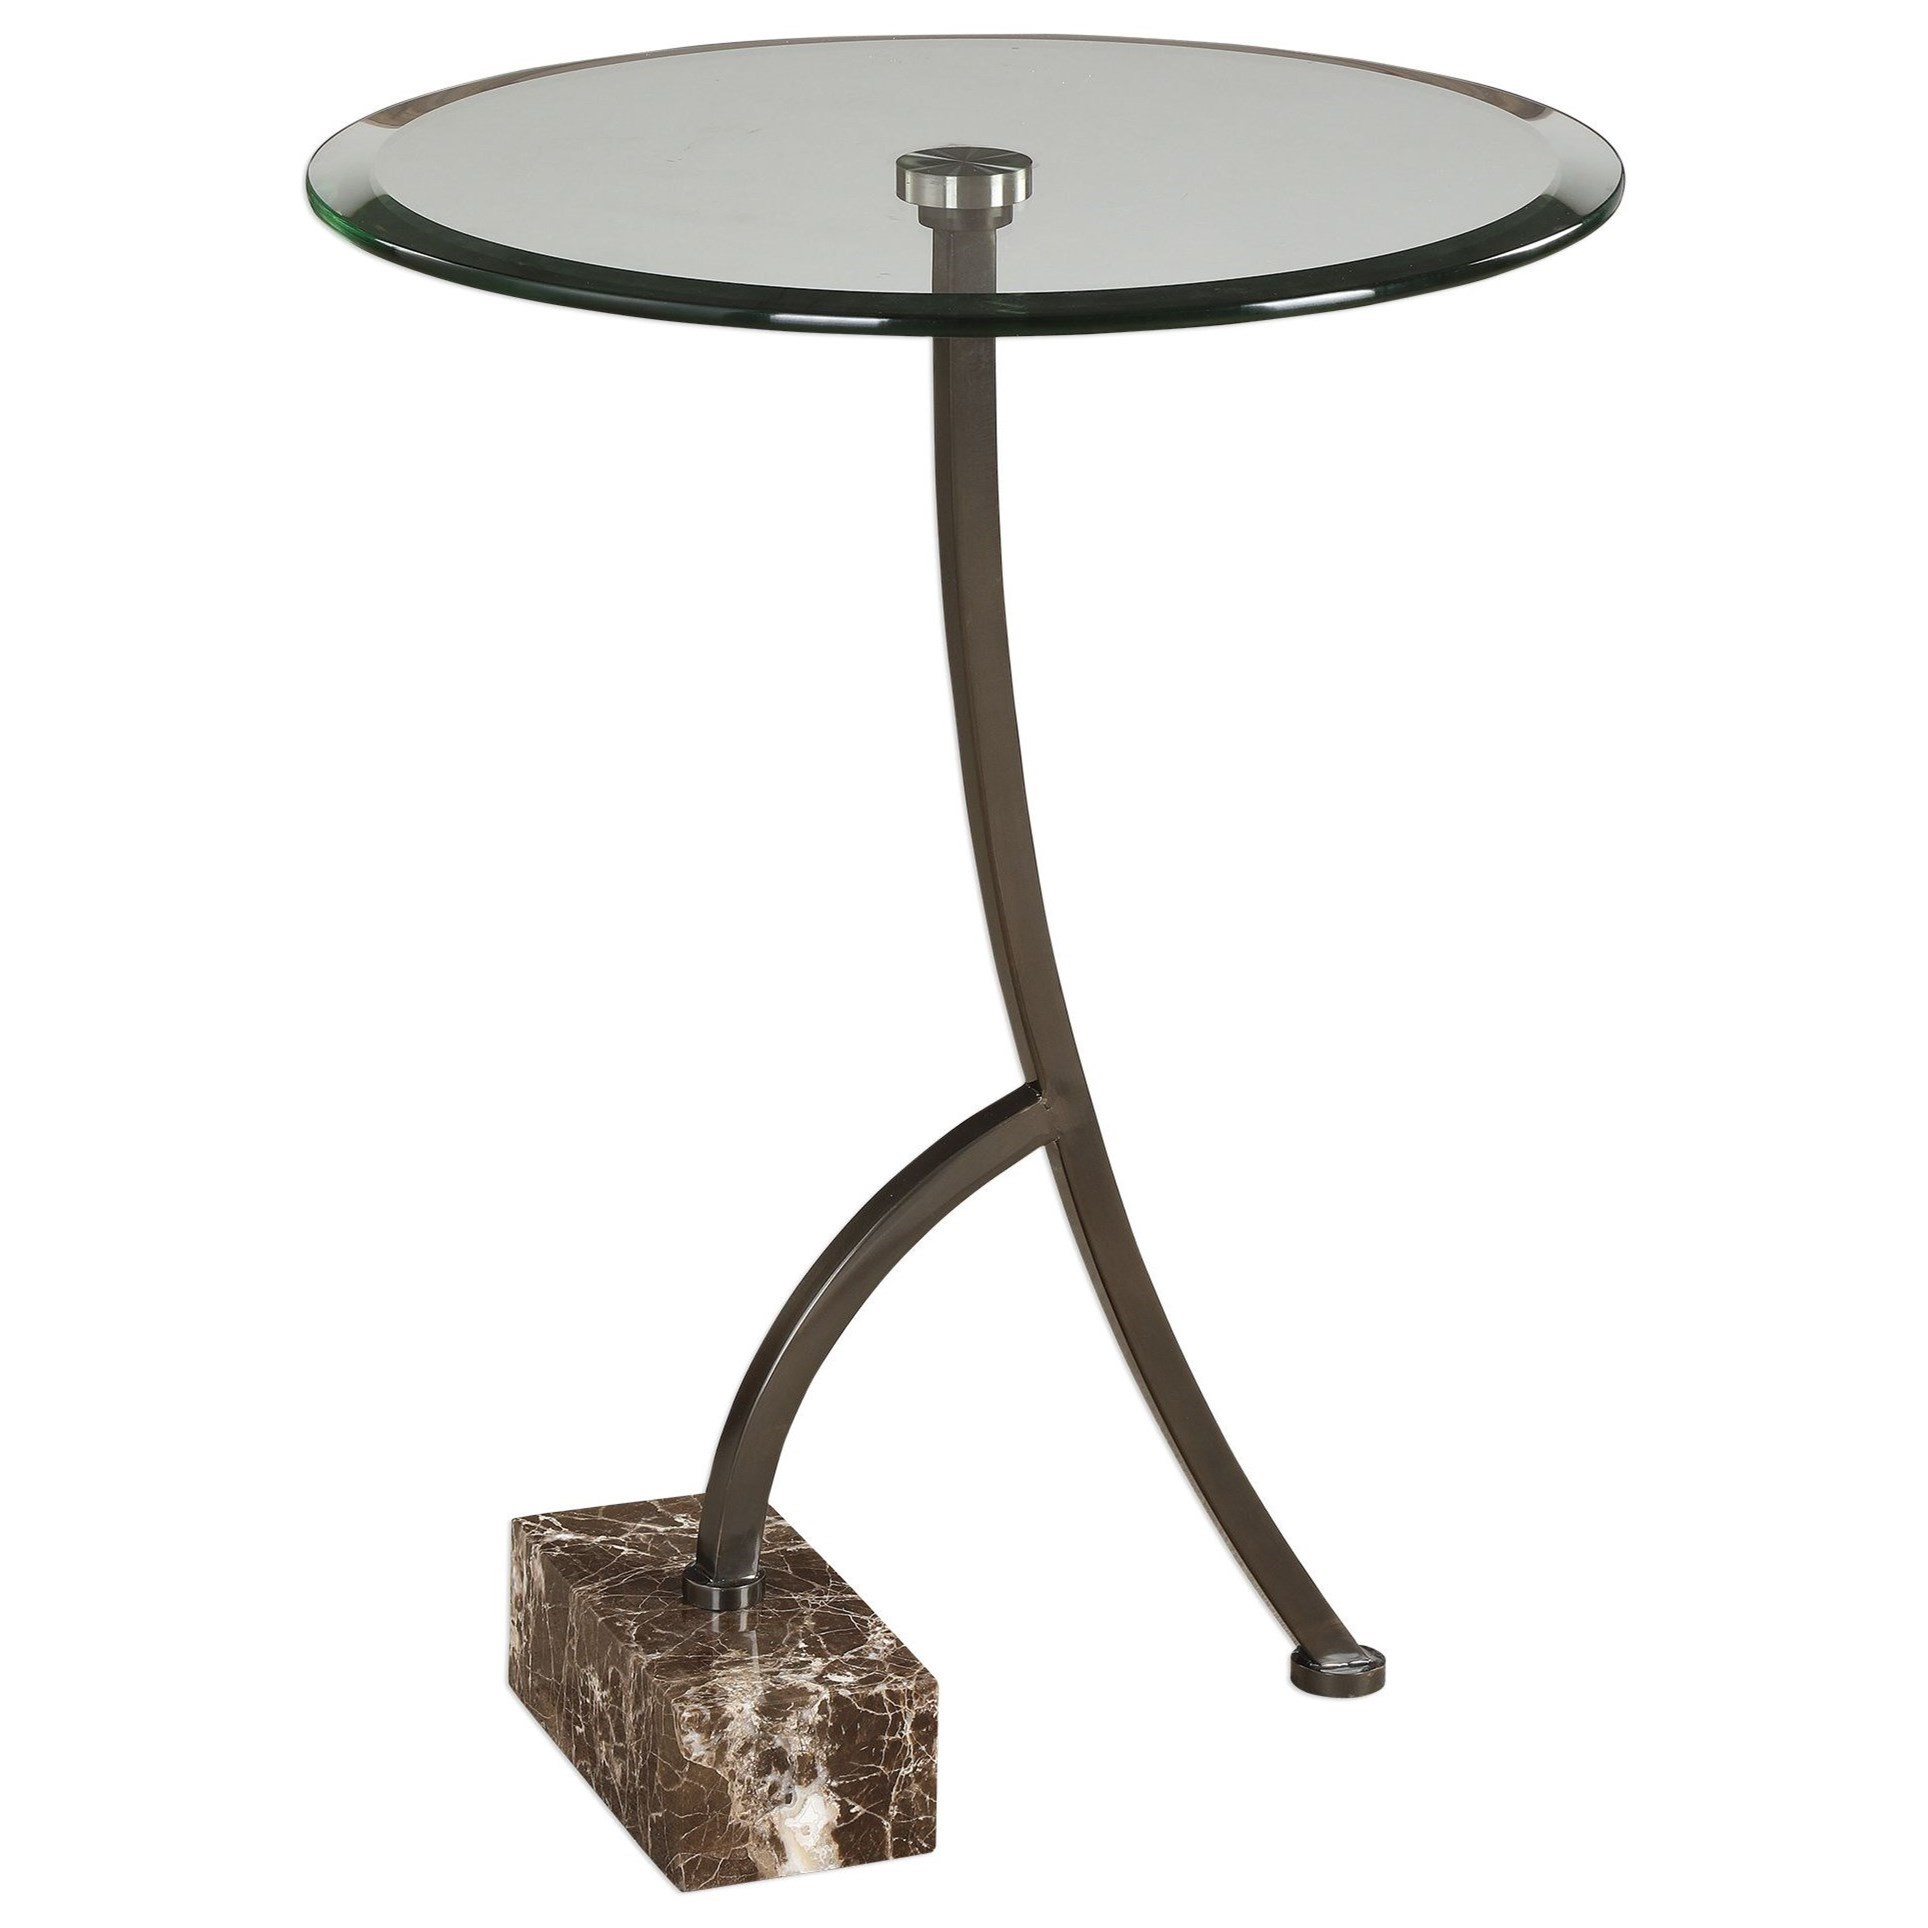 accent furniture occasional tables levi round bronze table products uttermost color cement vintage coffee narrow foyer pieces acrylic side with shelf wood set small black bedside